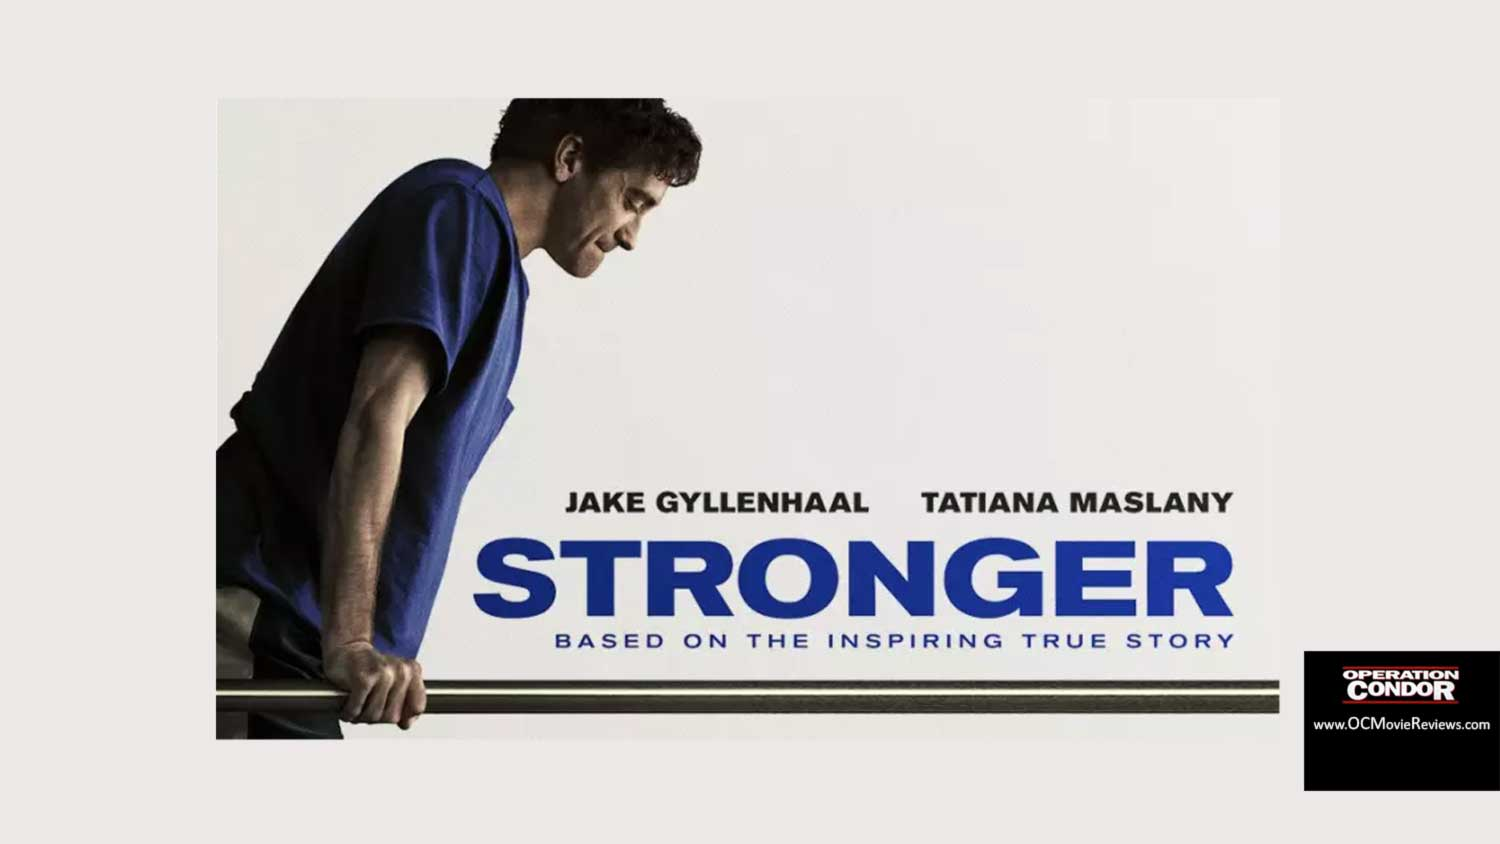 Stronger Review – A Truly Emotional Story - OC Movie Reviews - Movie Reviews, Movie News, Documentary Reviews, Short Films, Short Film Reviews, Trailers, Movie Trailers, Interviews, film reviews, film news, hollywood, indie films, documentaries